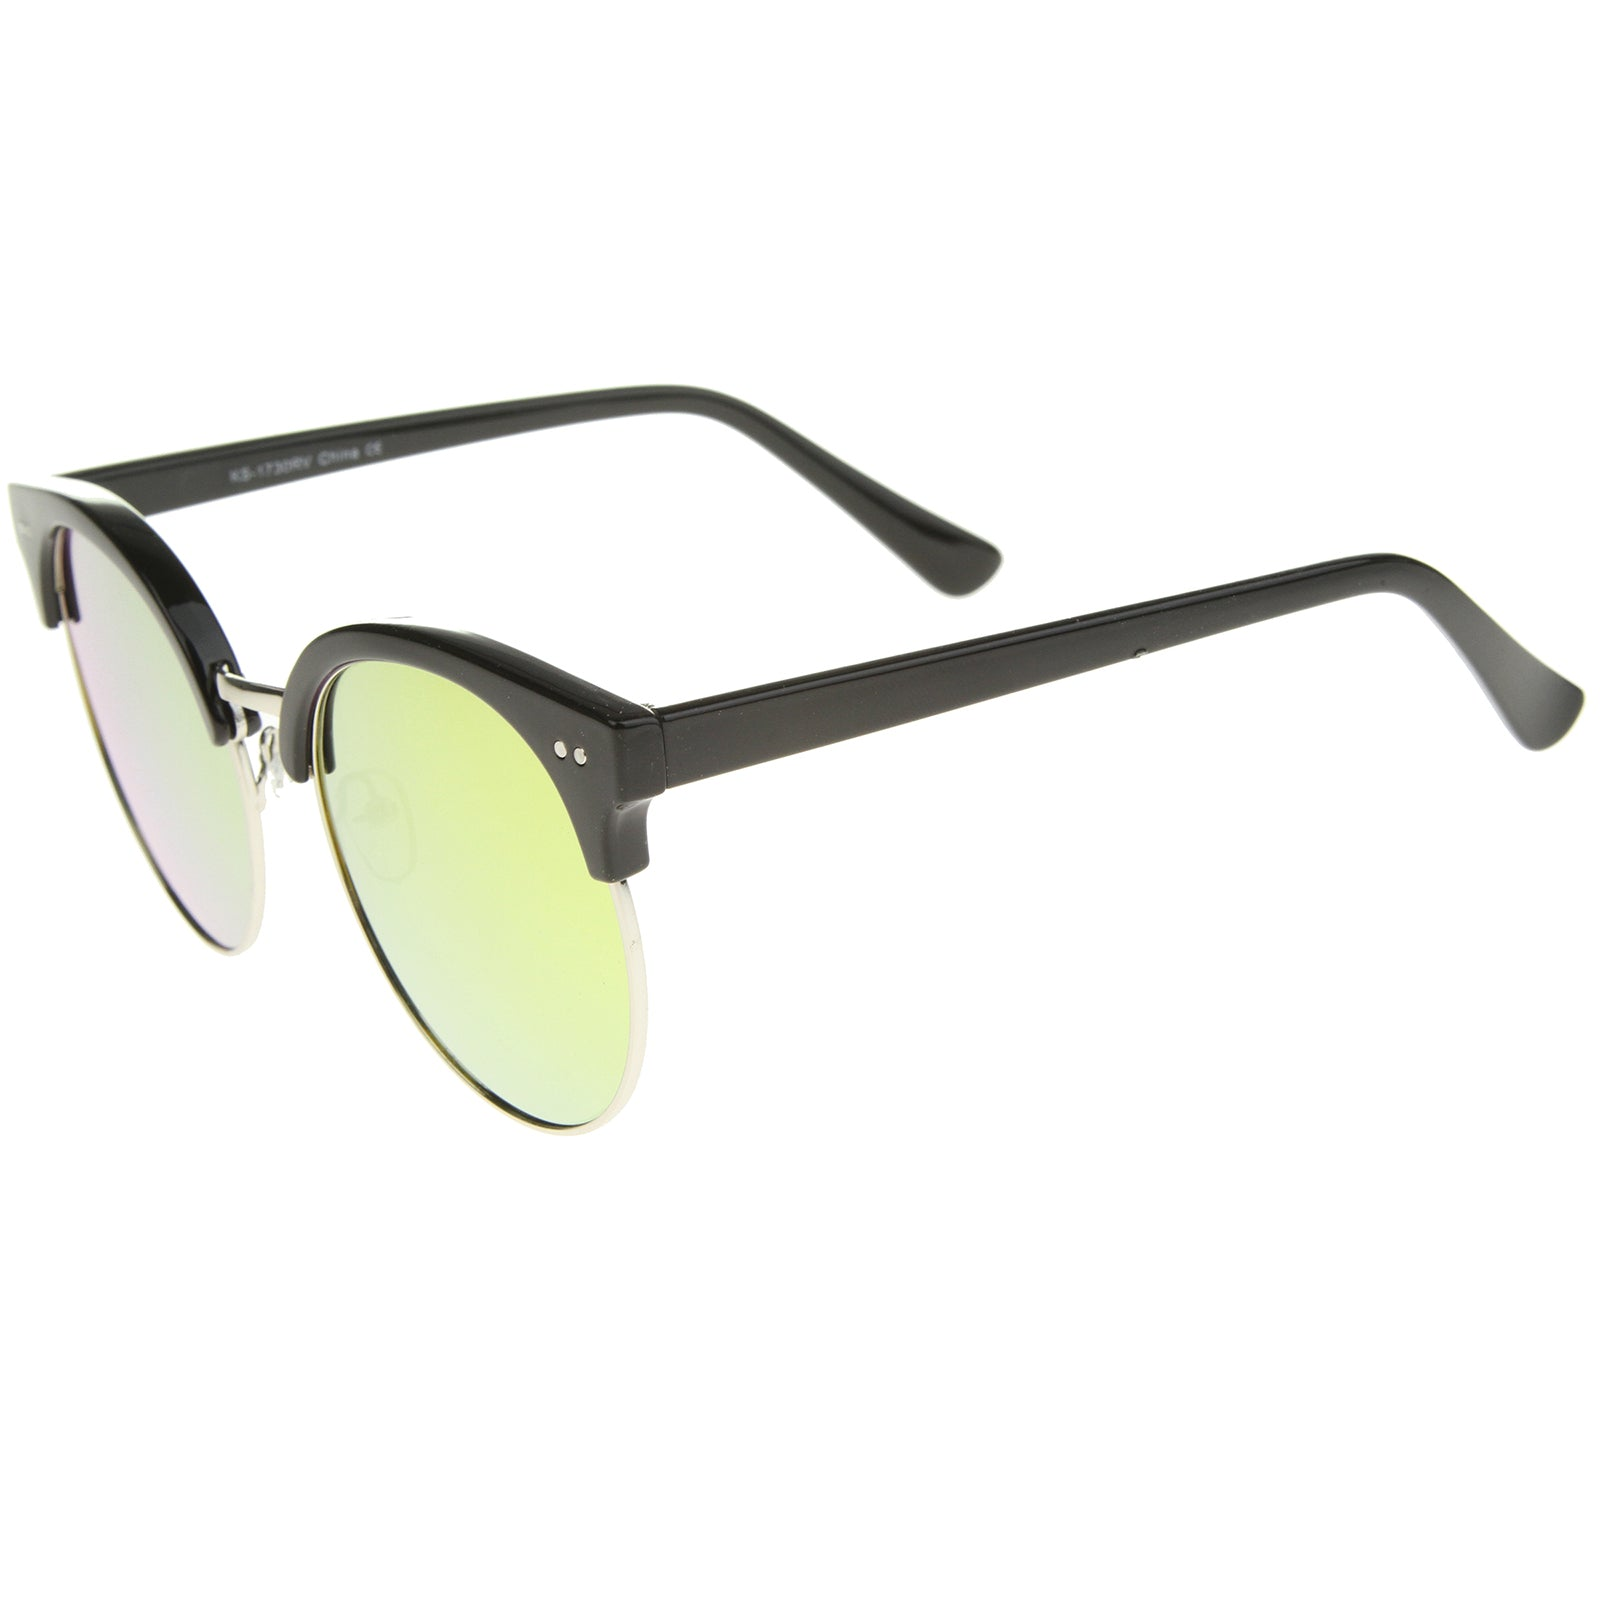 Womens Oversized Sunglasses With UV400 Protected Mirrored Lens - sunglass.la - 23